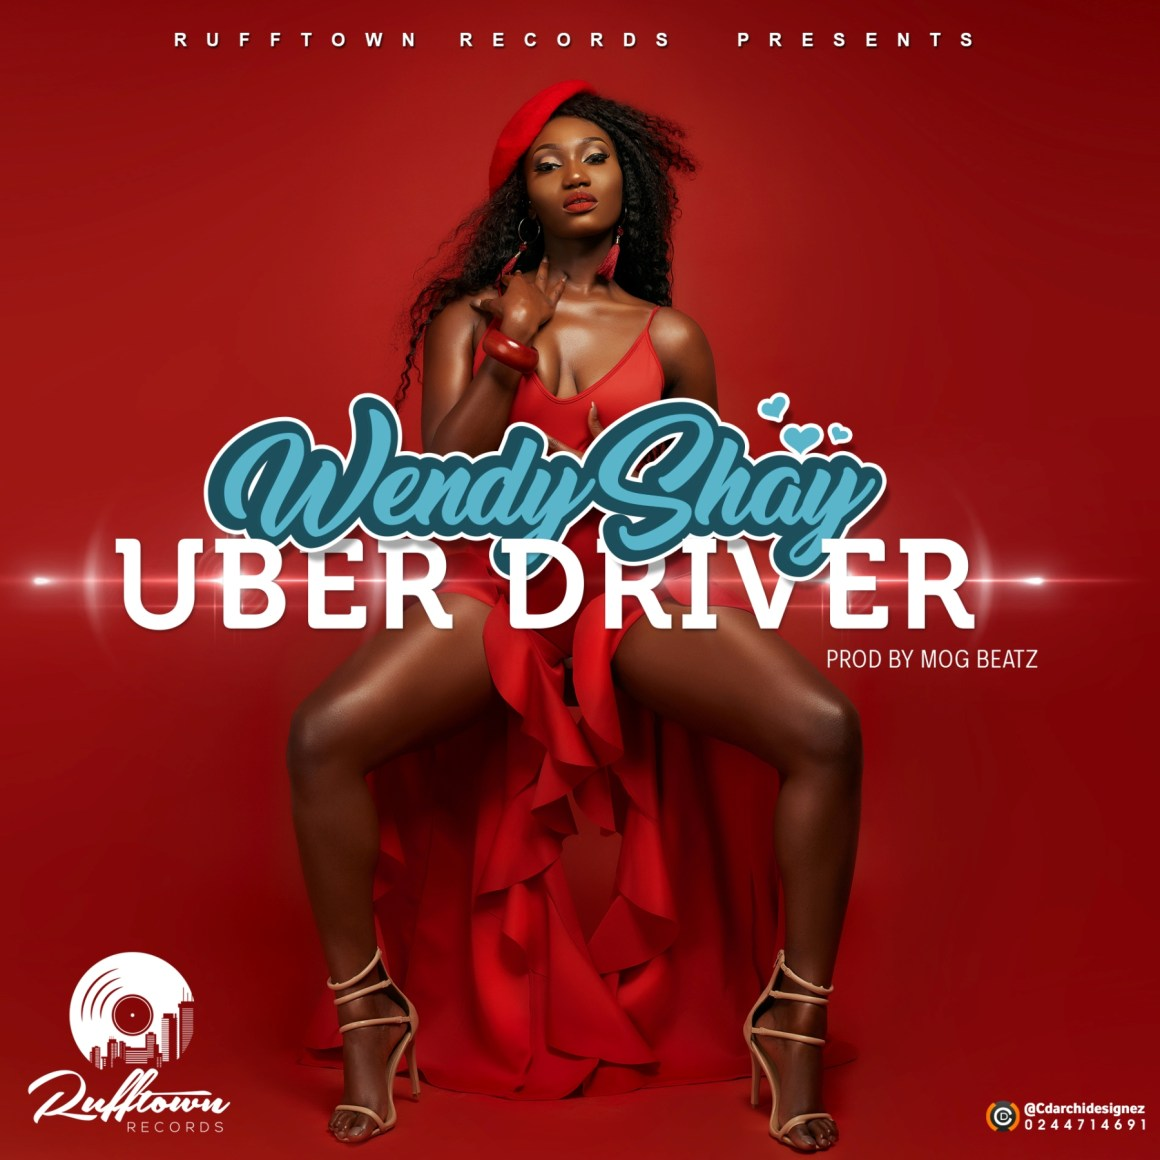 Ebony's replacement Wendy Shay releases first single Uber Driver